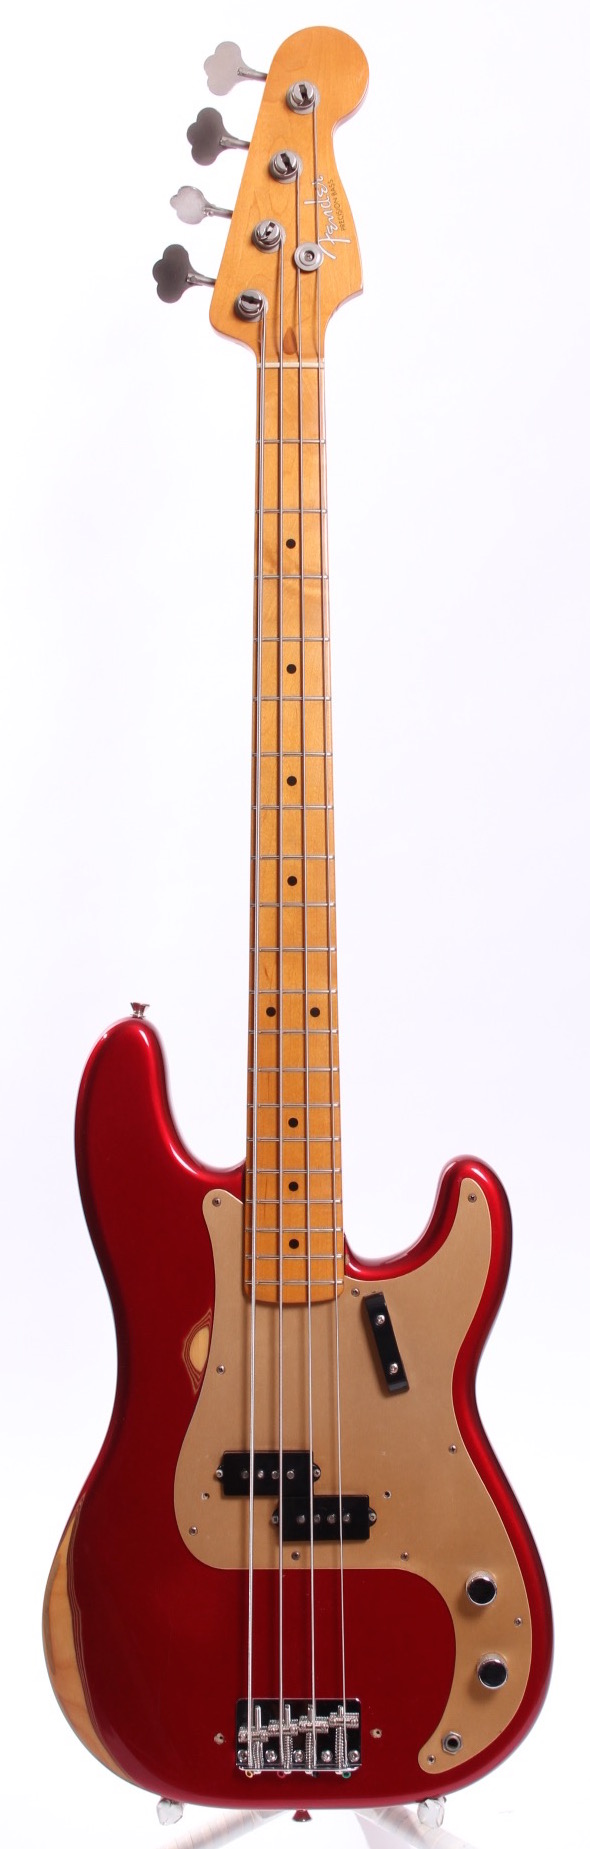 fender american vintage 39 57 reissue precision bass 1999 candy apple red bass for sale yeahman 39 s. Black Bedroom Furniture Sets. Home Design Ideas